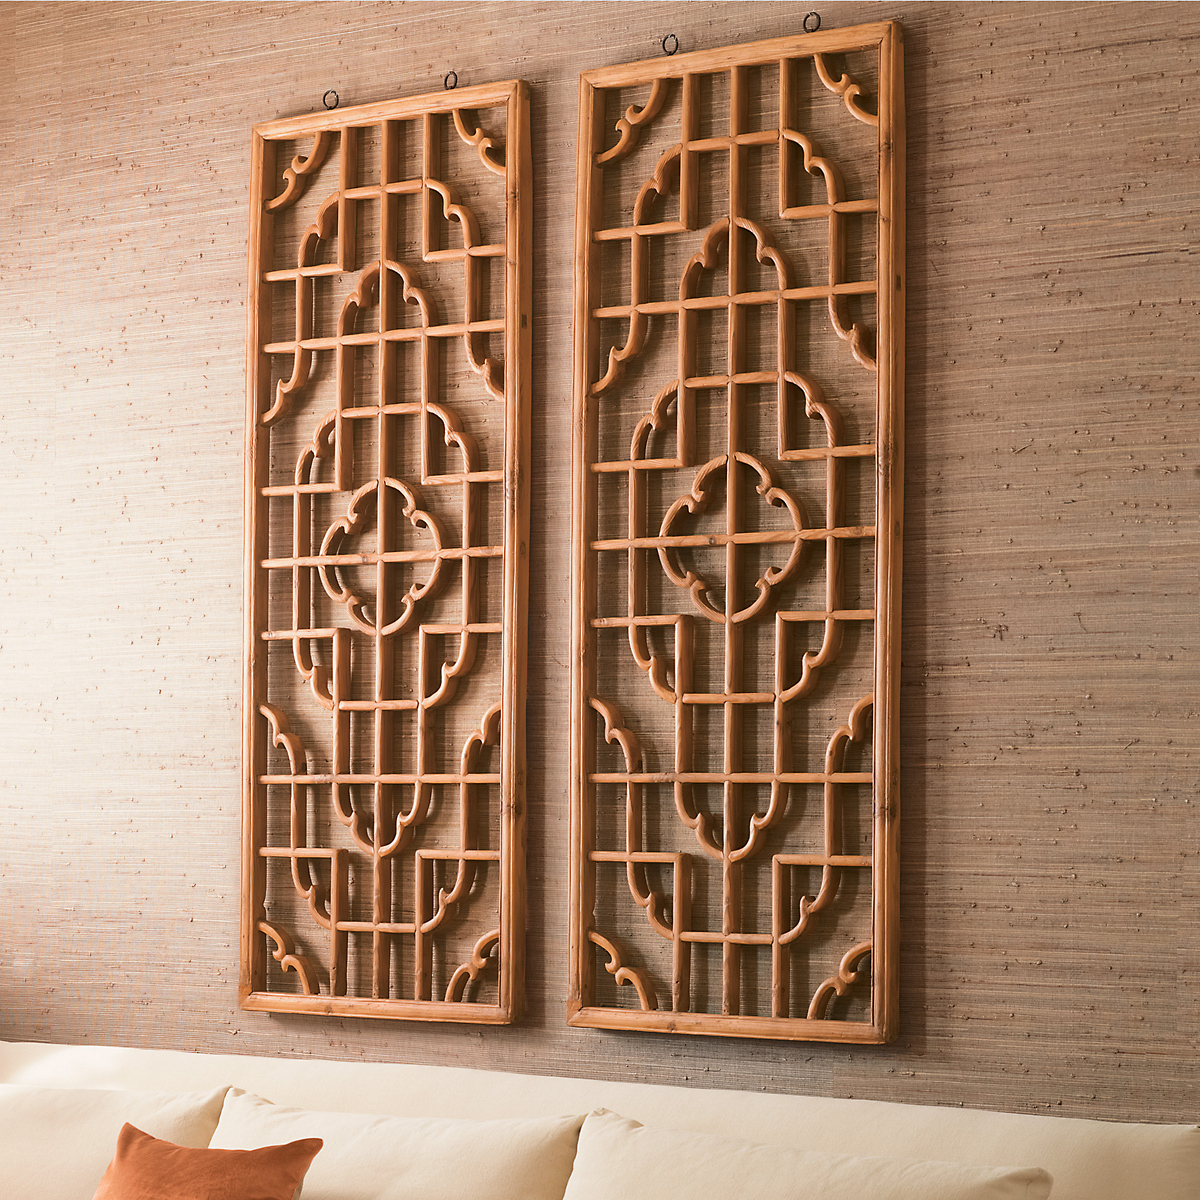 Carved openwork wood panel gump s